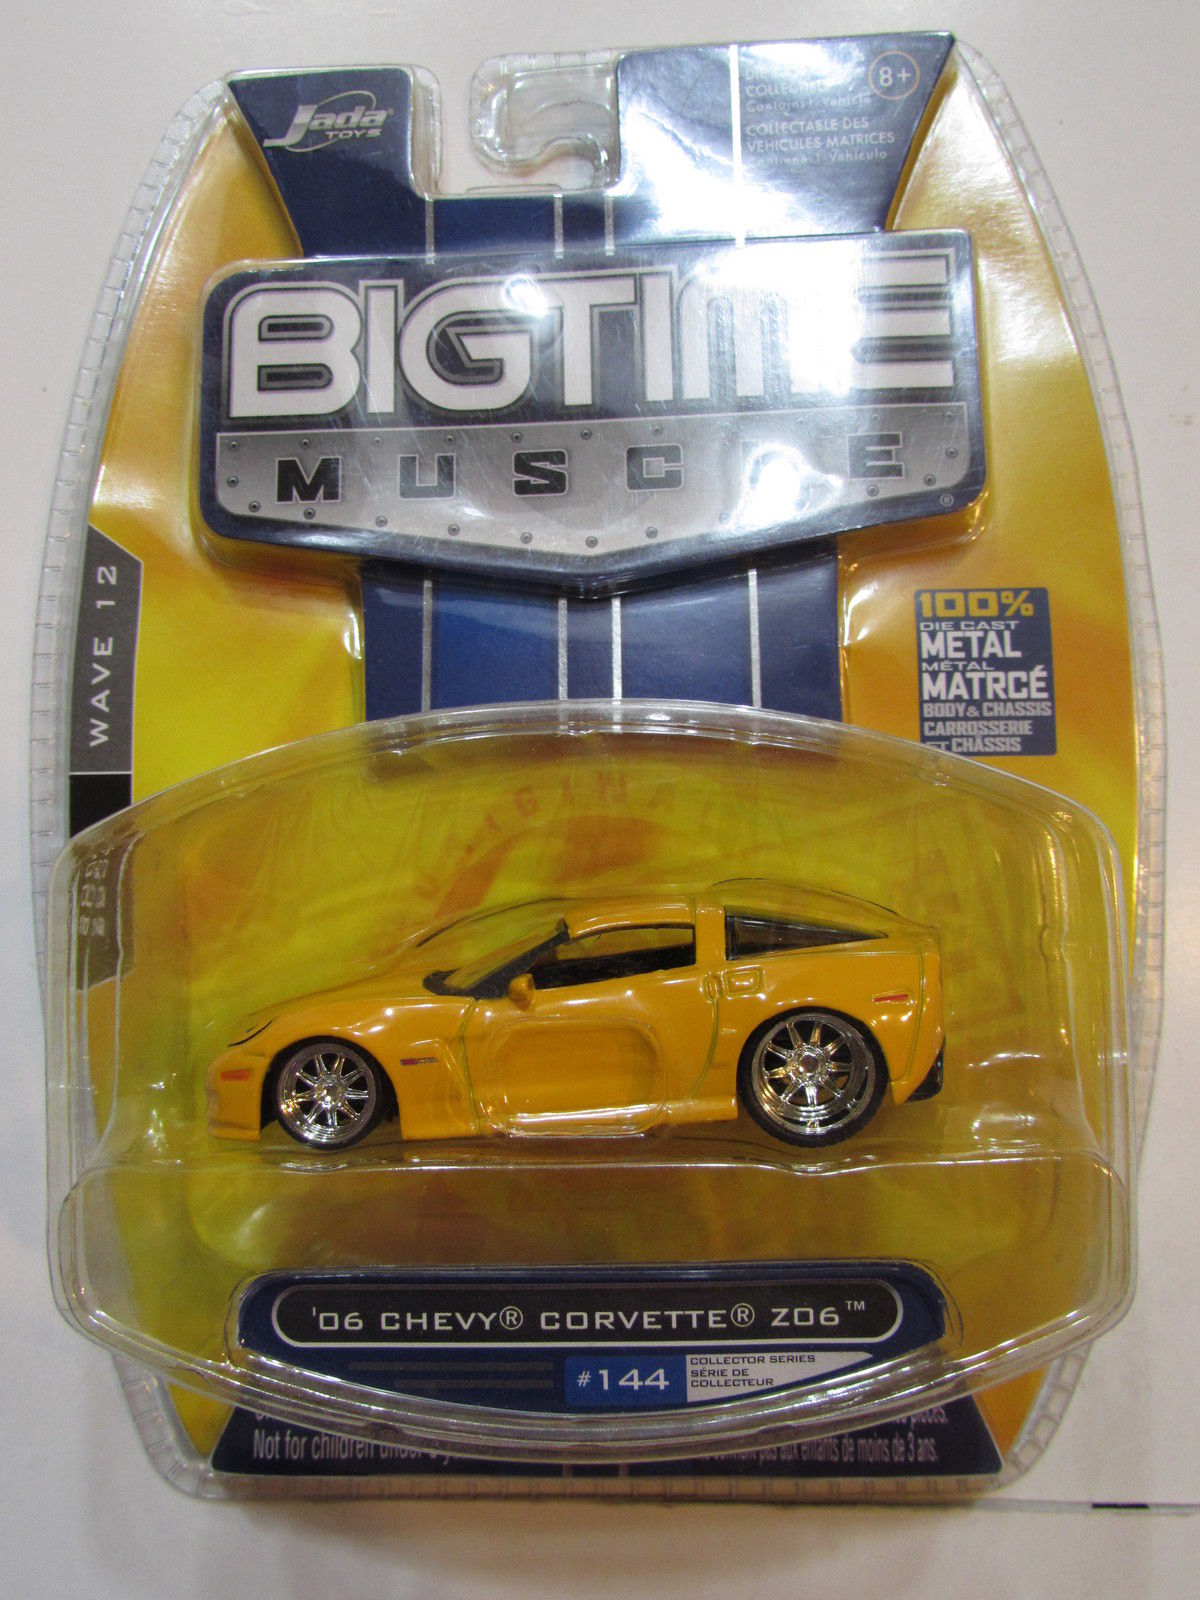 JADA BIGTIME MUSCLE 2007 WAVE 12 - '06 CHEVY CORVETTE Z06 #144 YELLOW